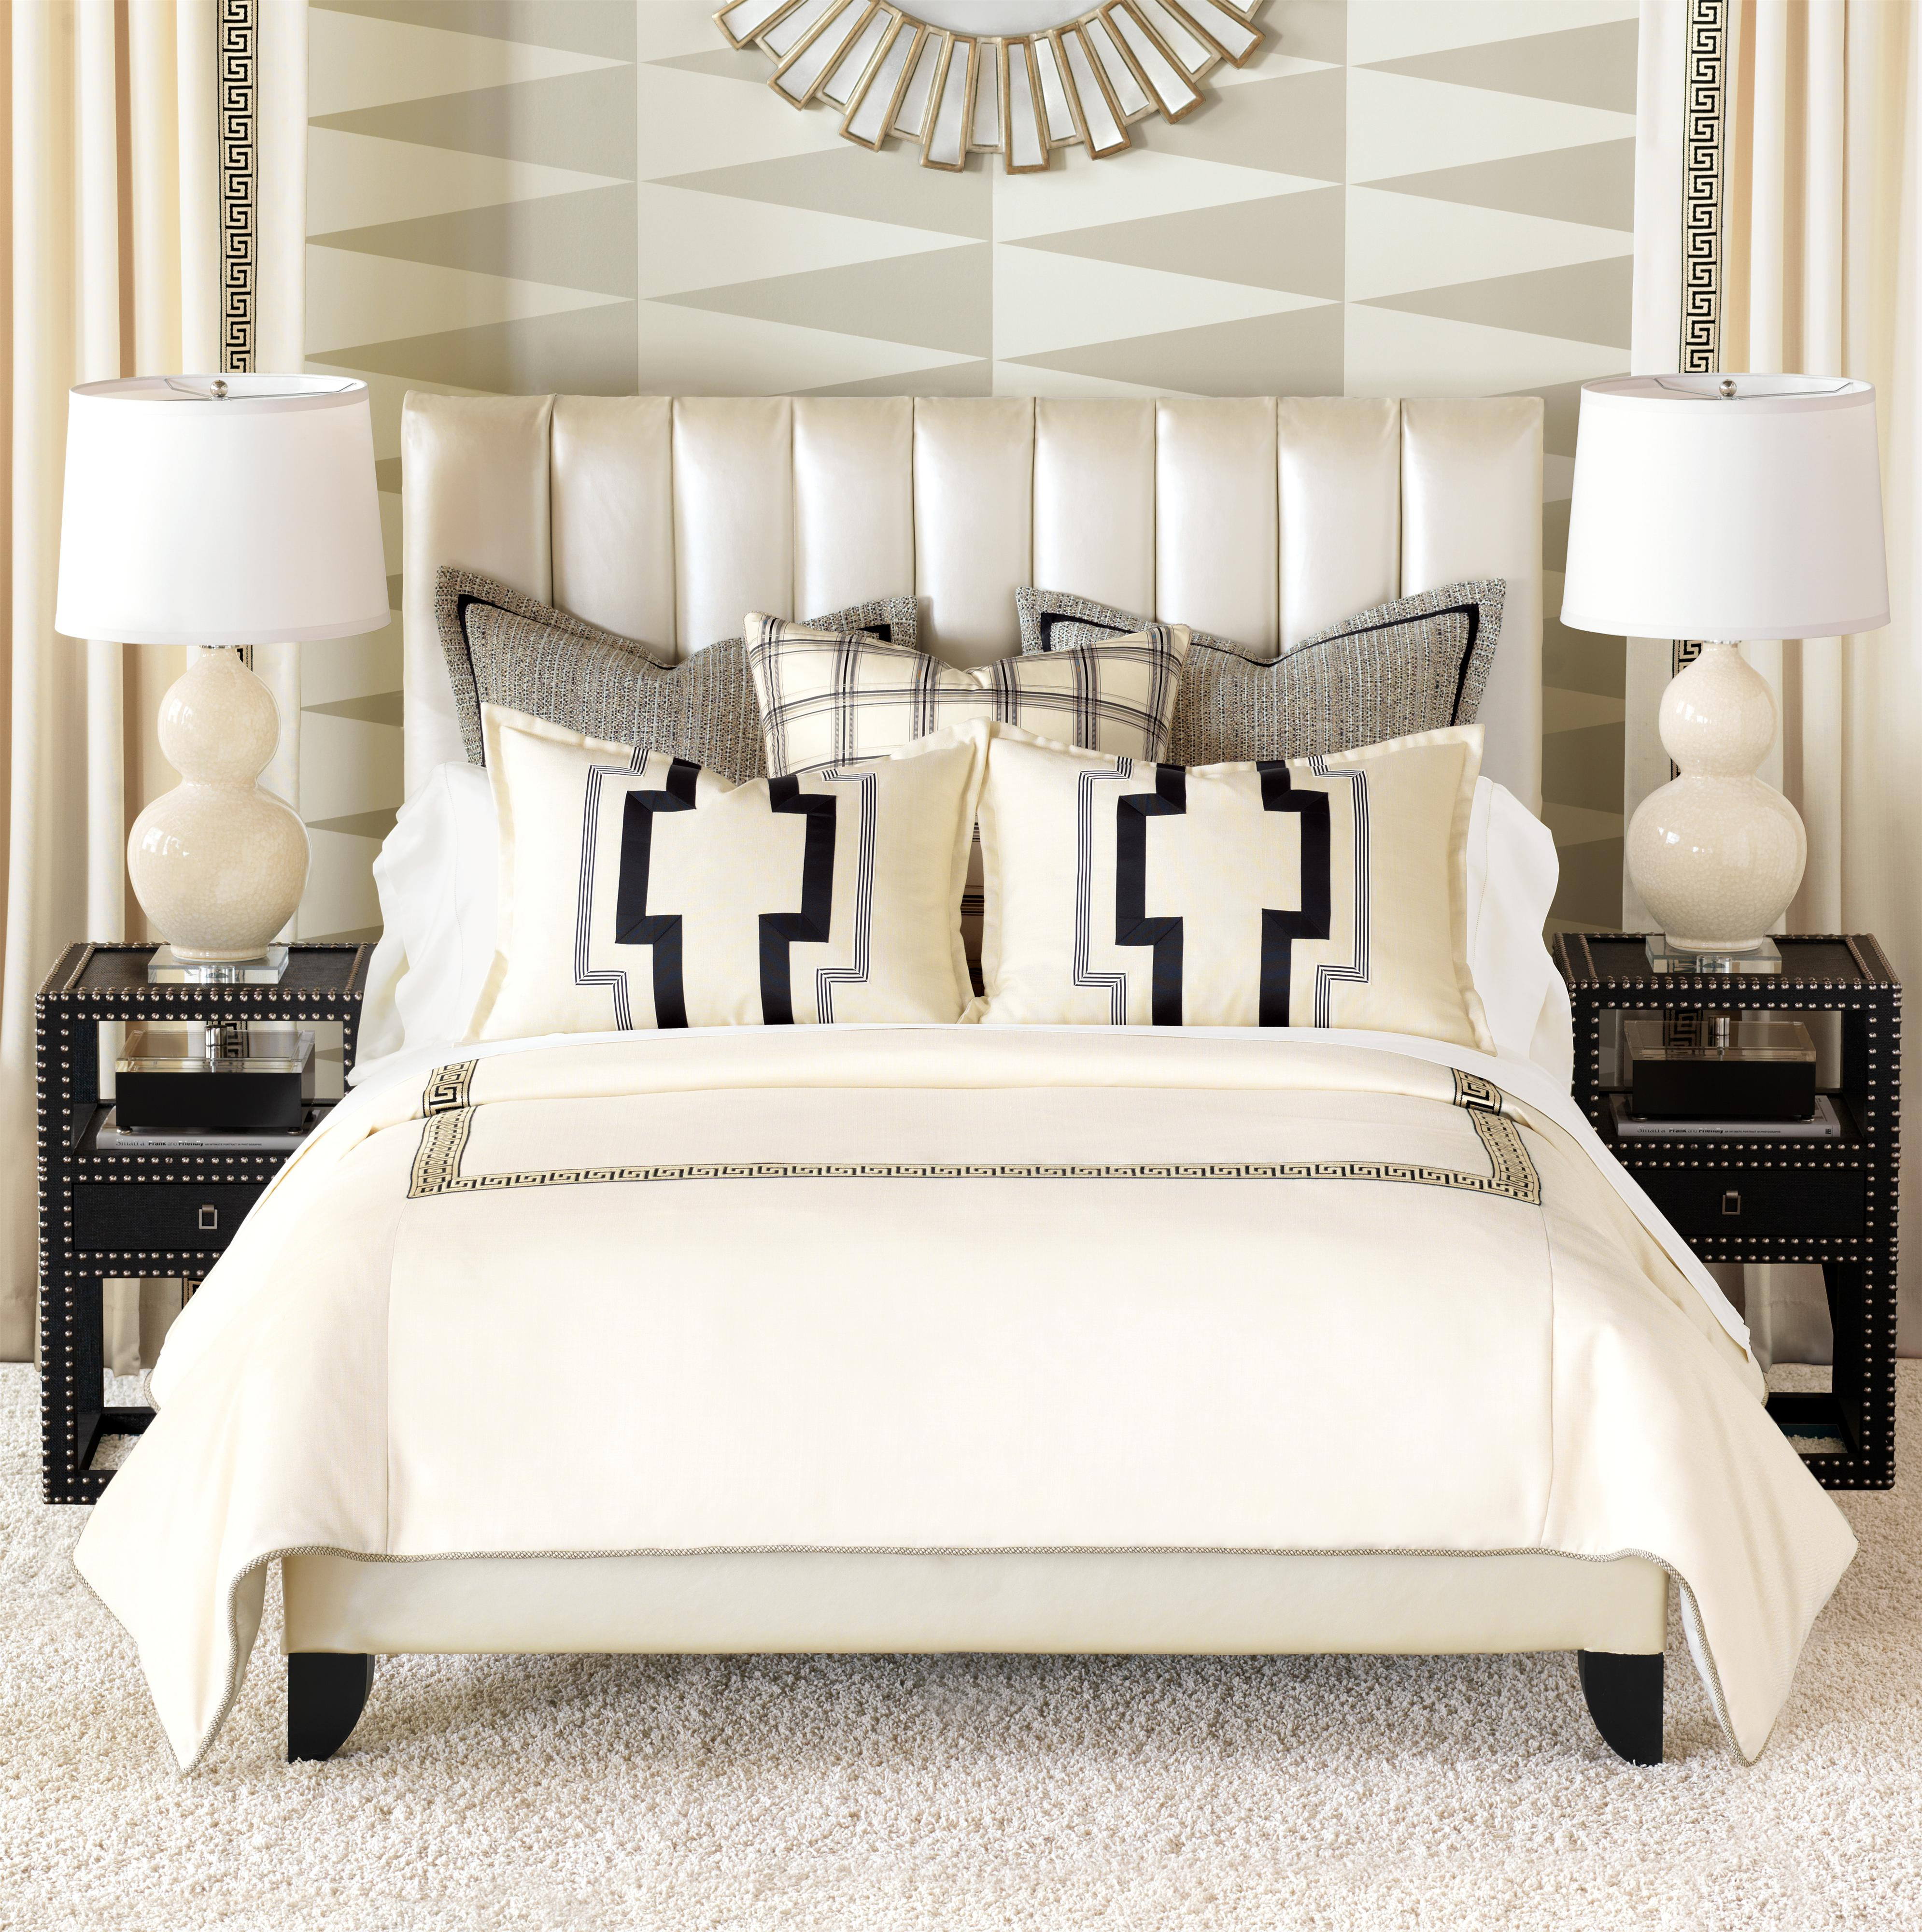 Abernathy Twin Duvet Cover by Eastern Accents at Alison Craig Home Furnishings